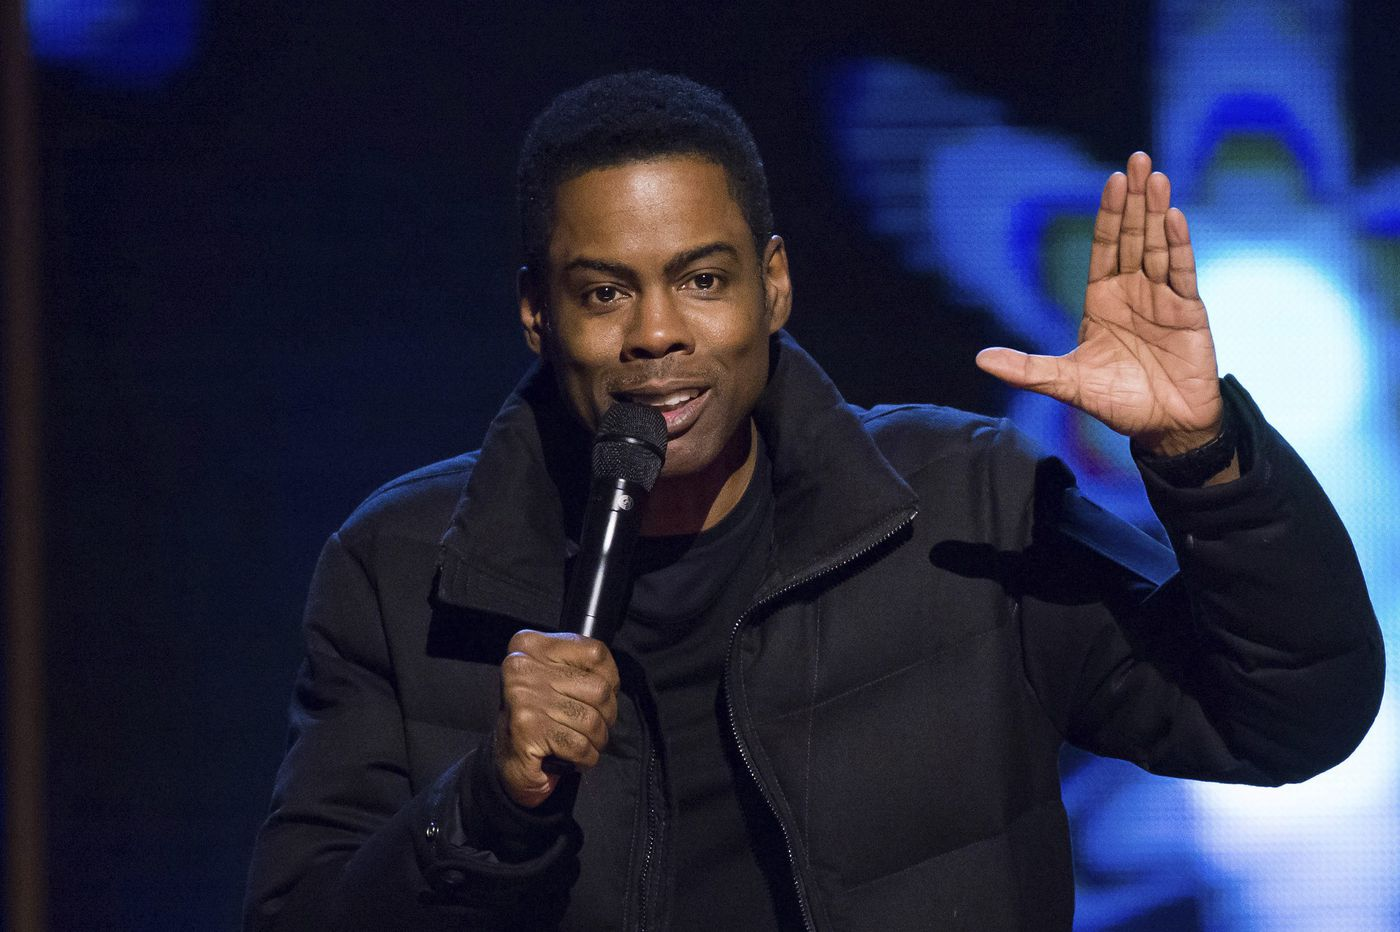 Chris Rock to star in next season of FX's 'Fargo'